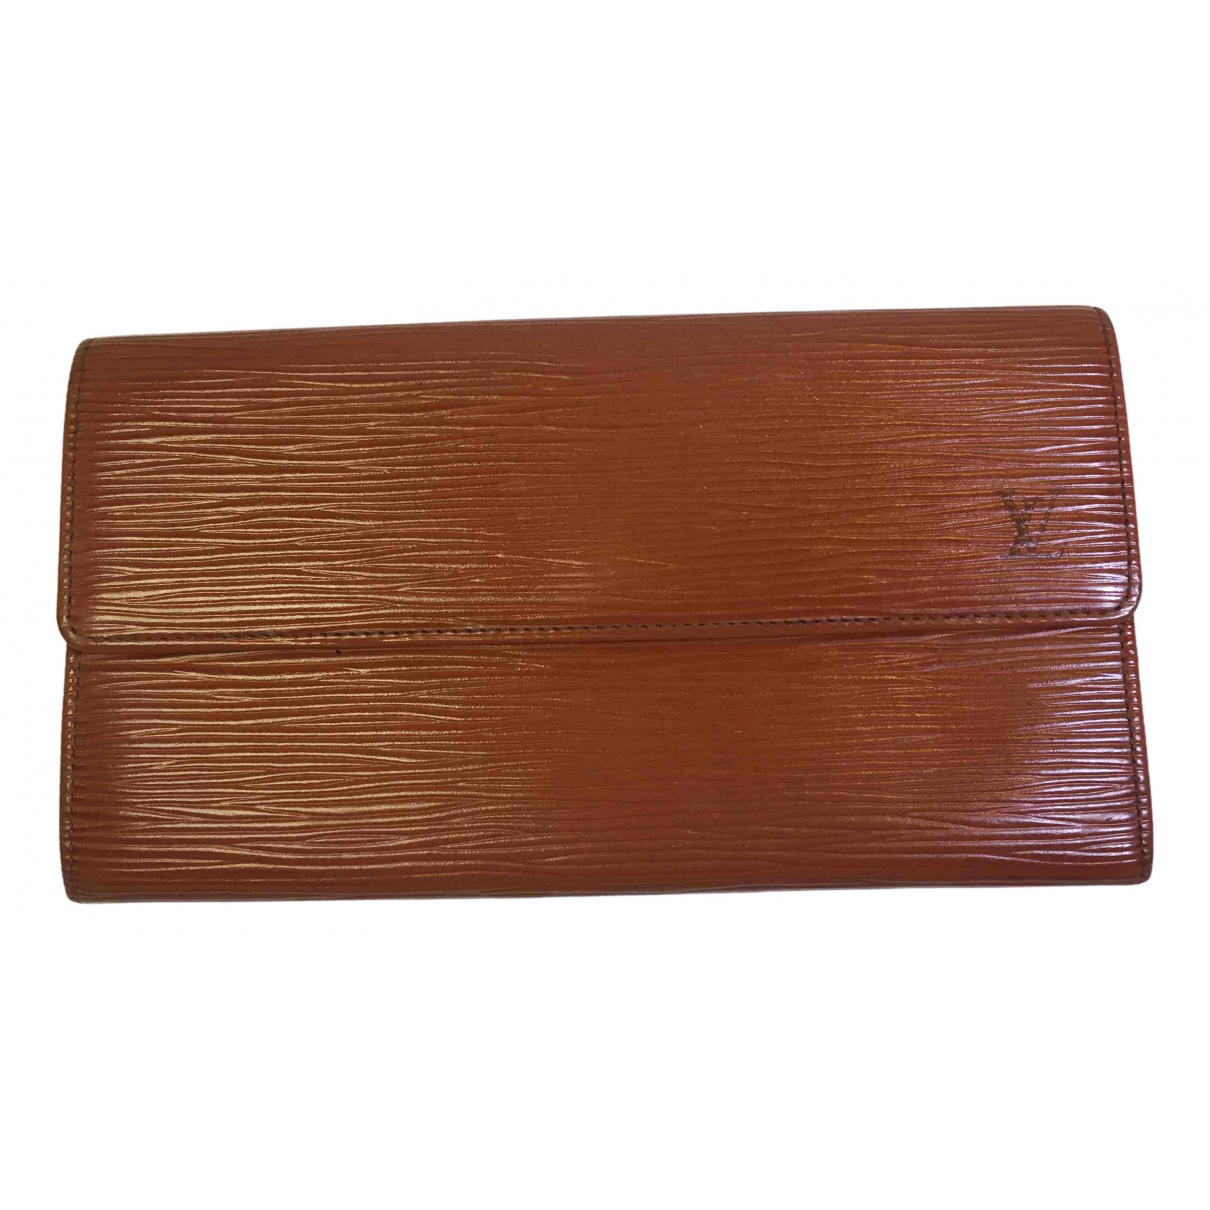 Louis Vuitton N Camel Leather wallet for Women N